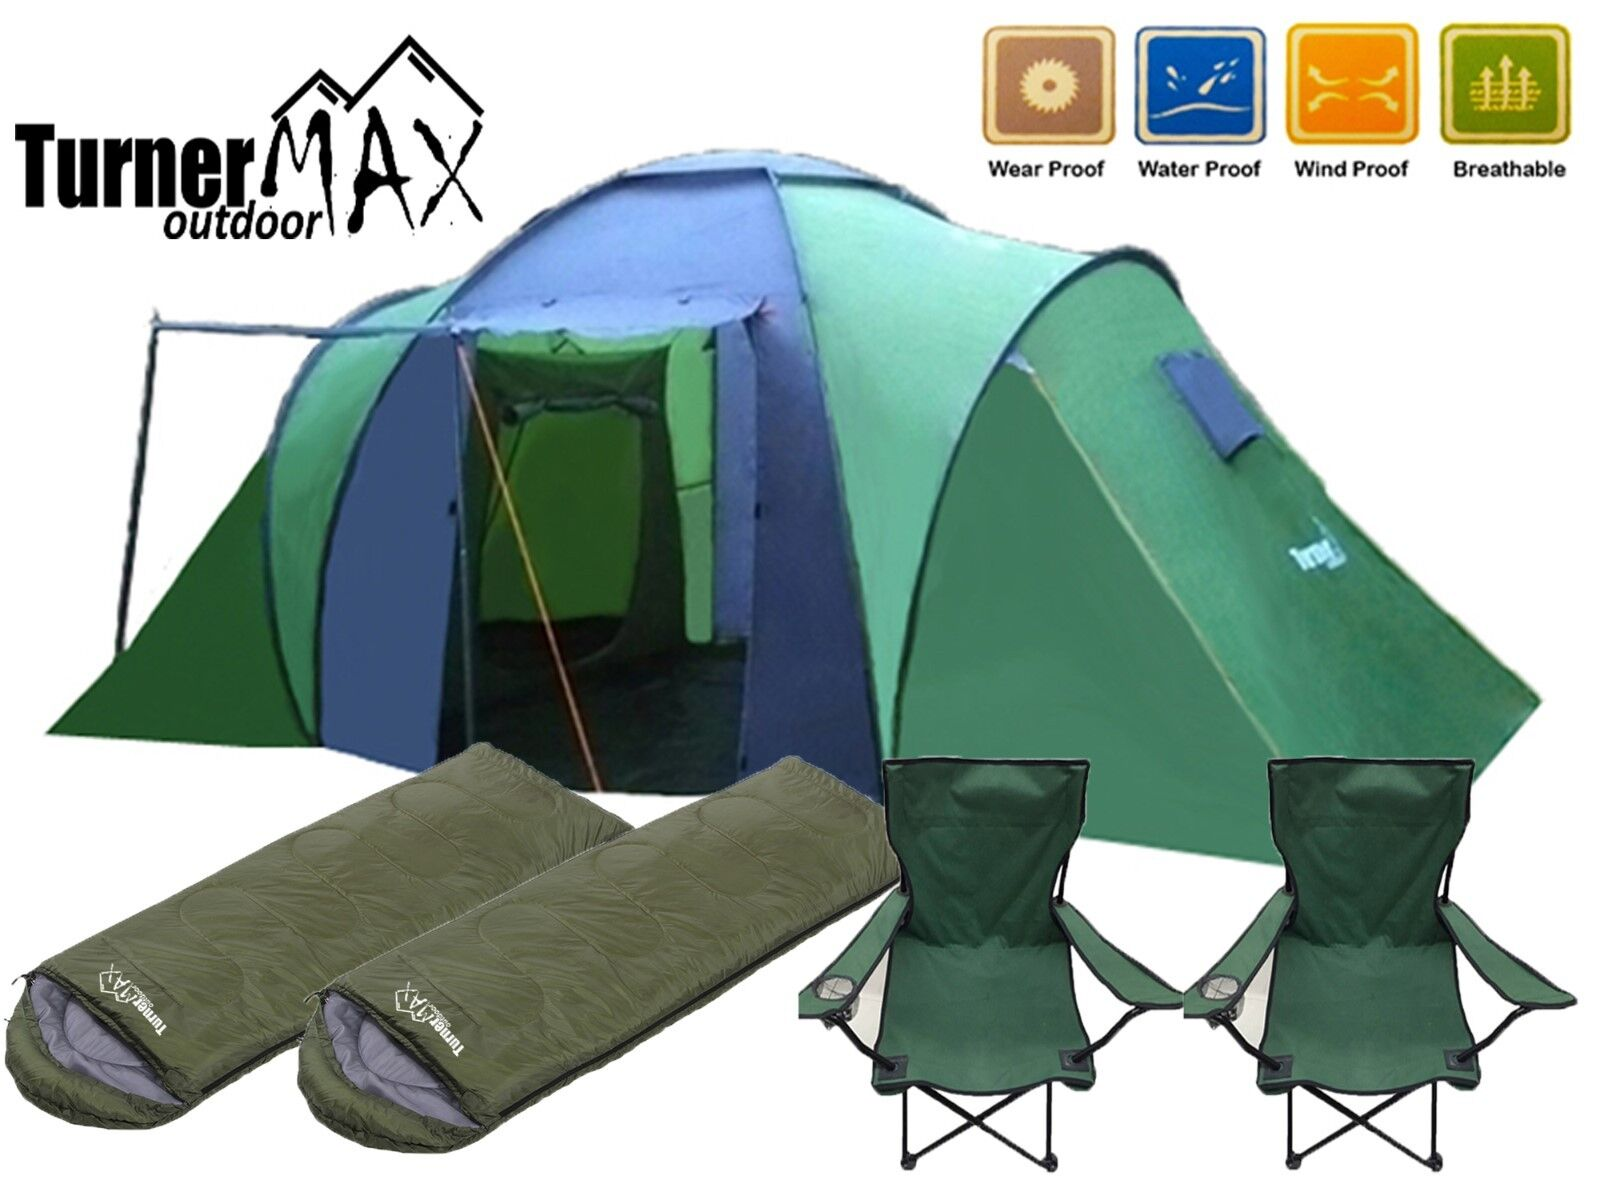 Trijan de plein air 4 6 Person Camping Hiking Tent with Two Sleeping sacs & Chairs